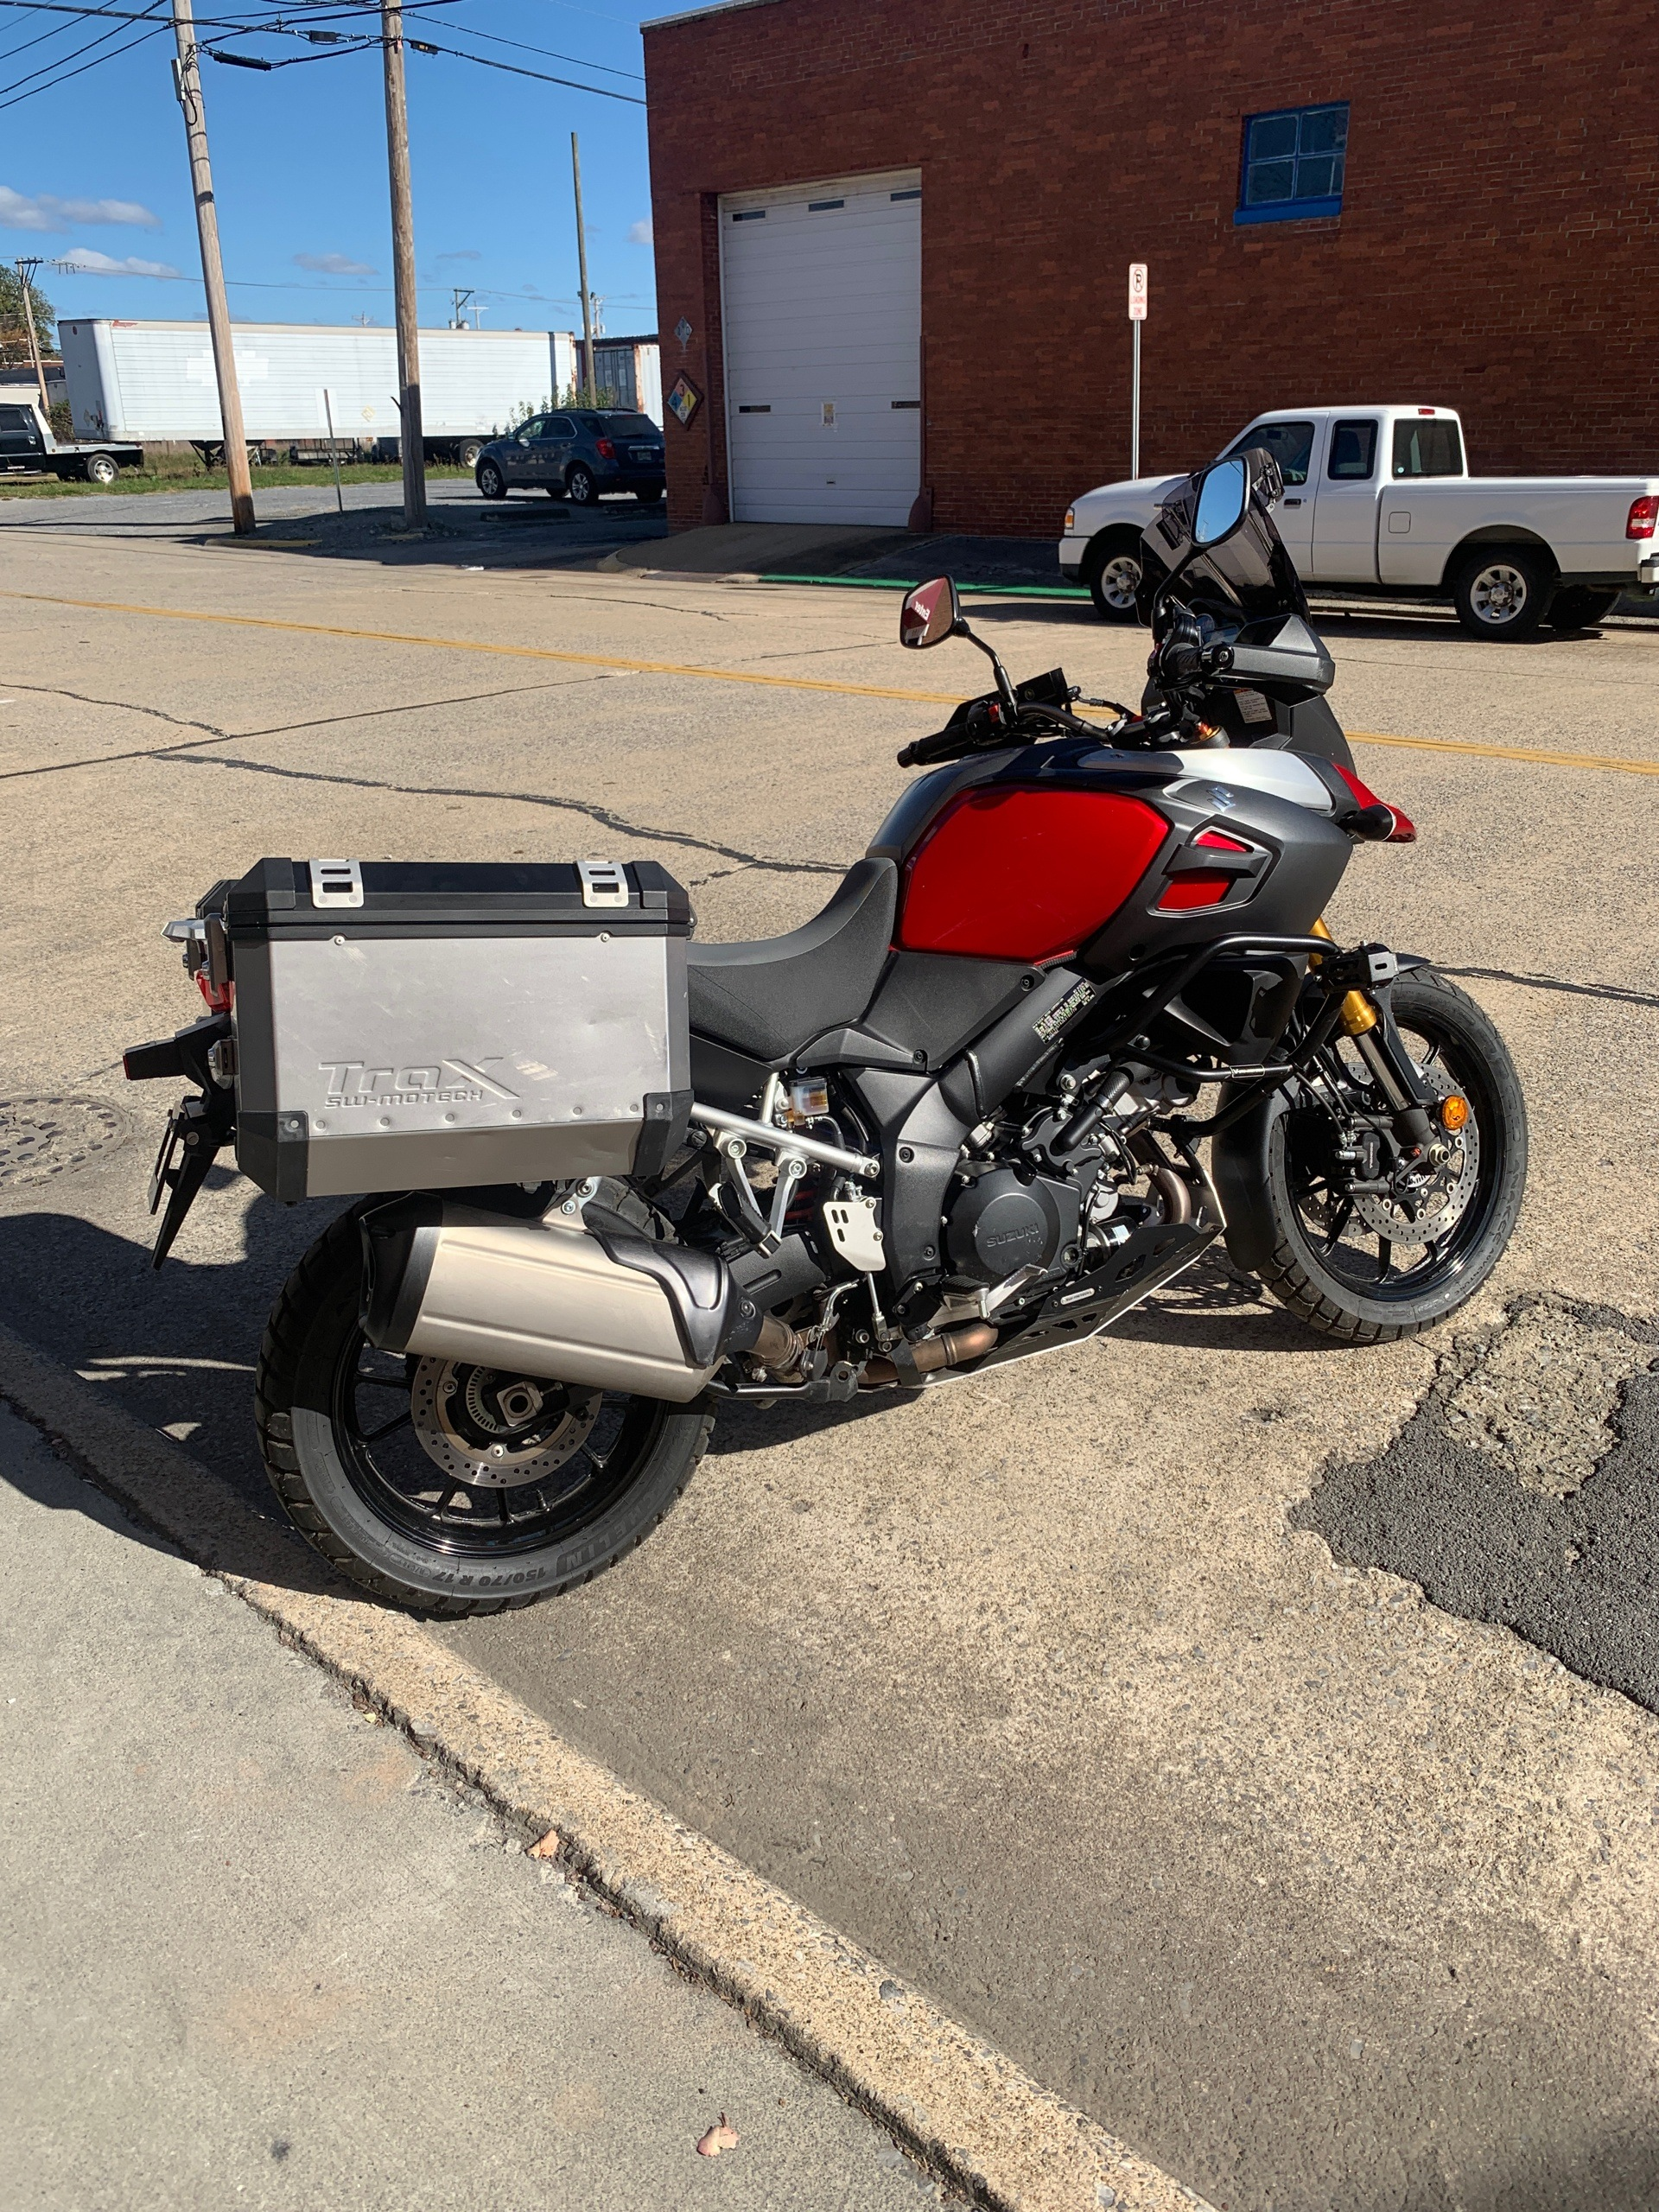 2014 Suzuki V-Strom 1000 ABS in Kingsport, Tennessee - Photo 2